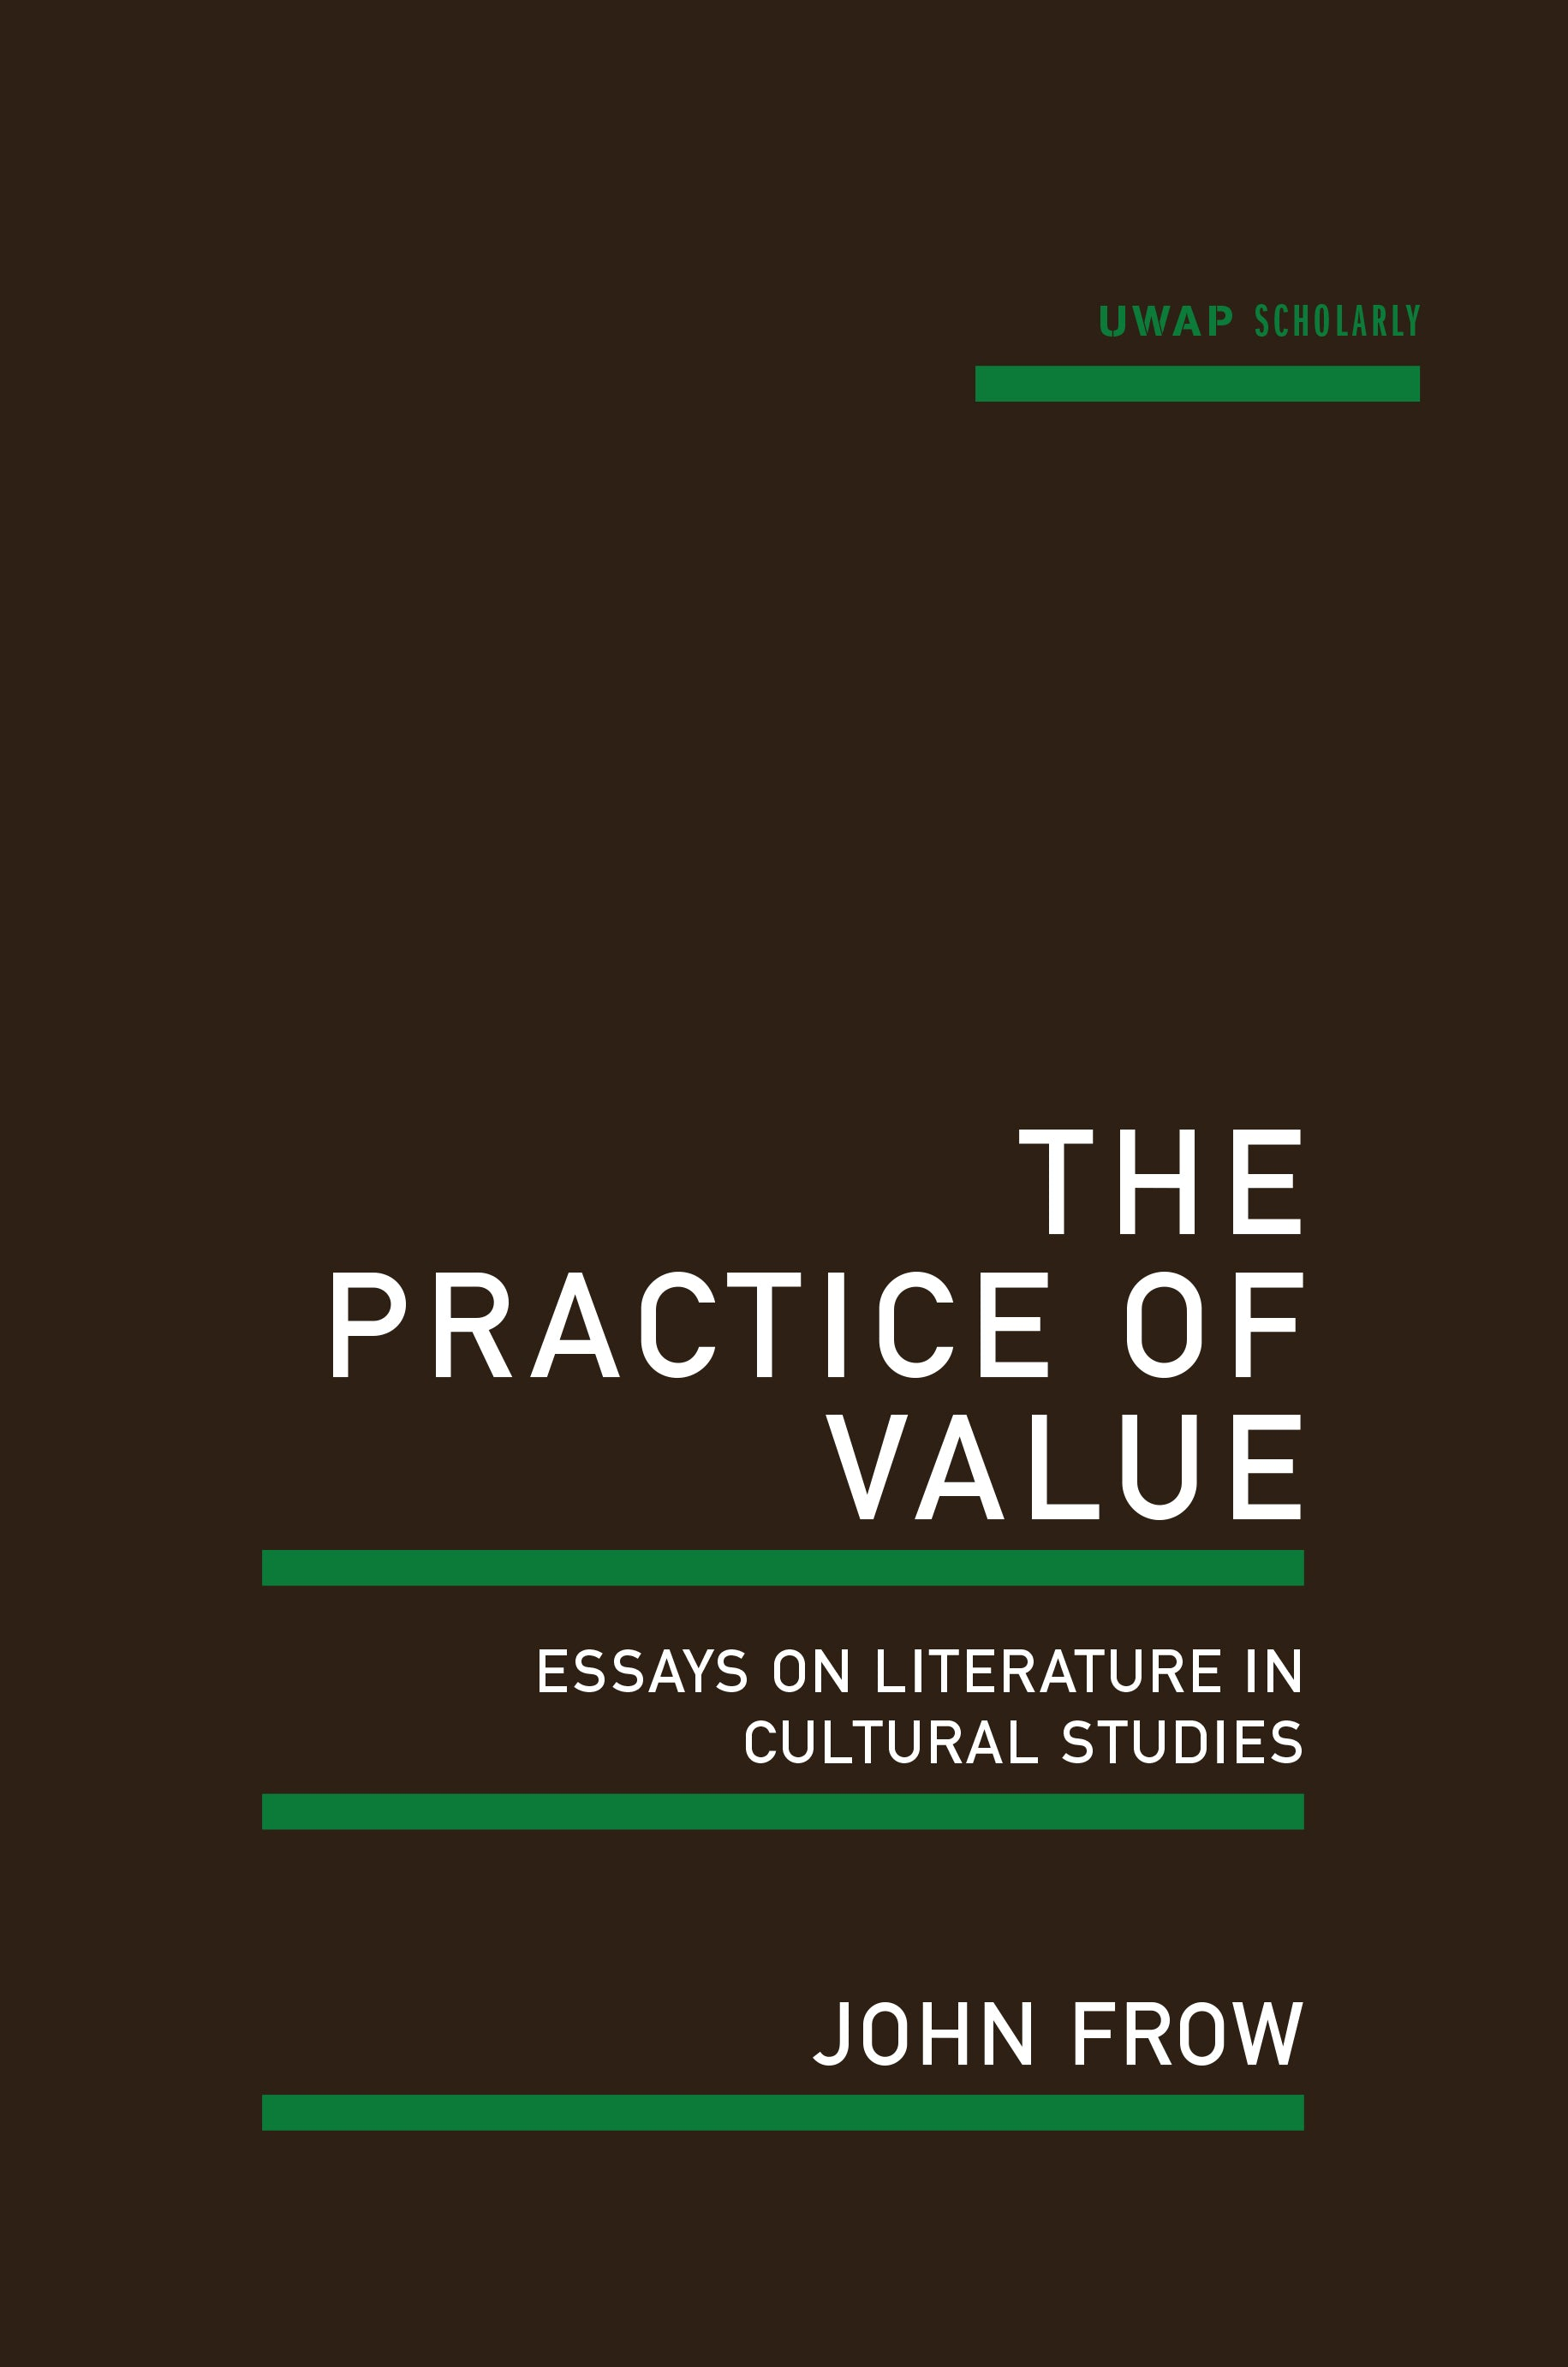 the practice of value essays on literature in cultural studies high res cover image